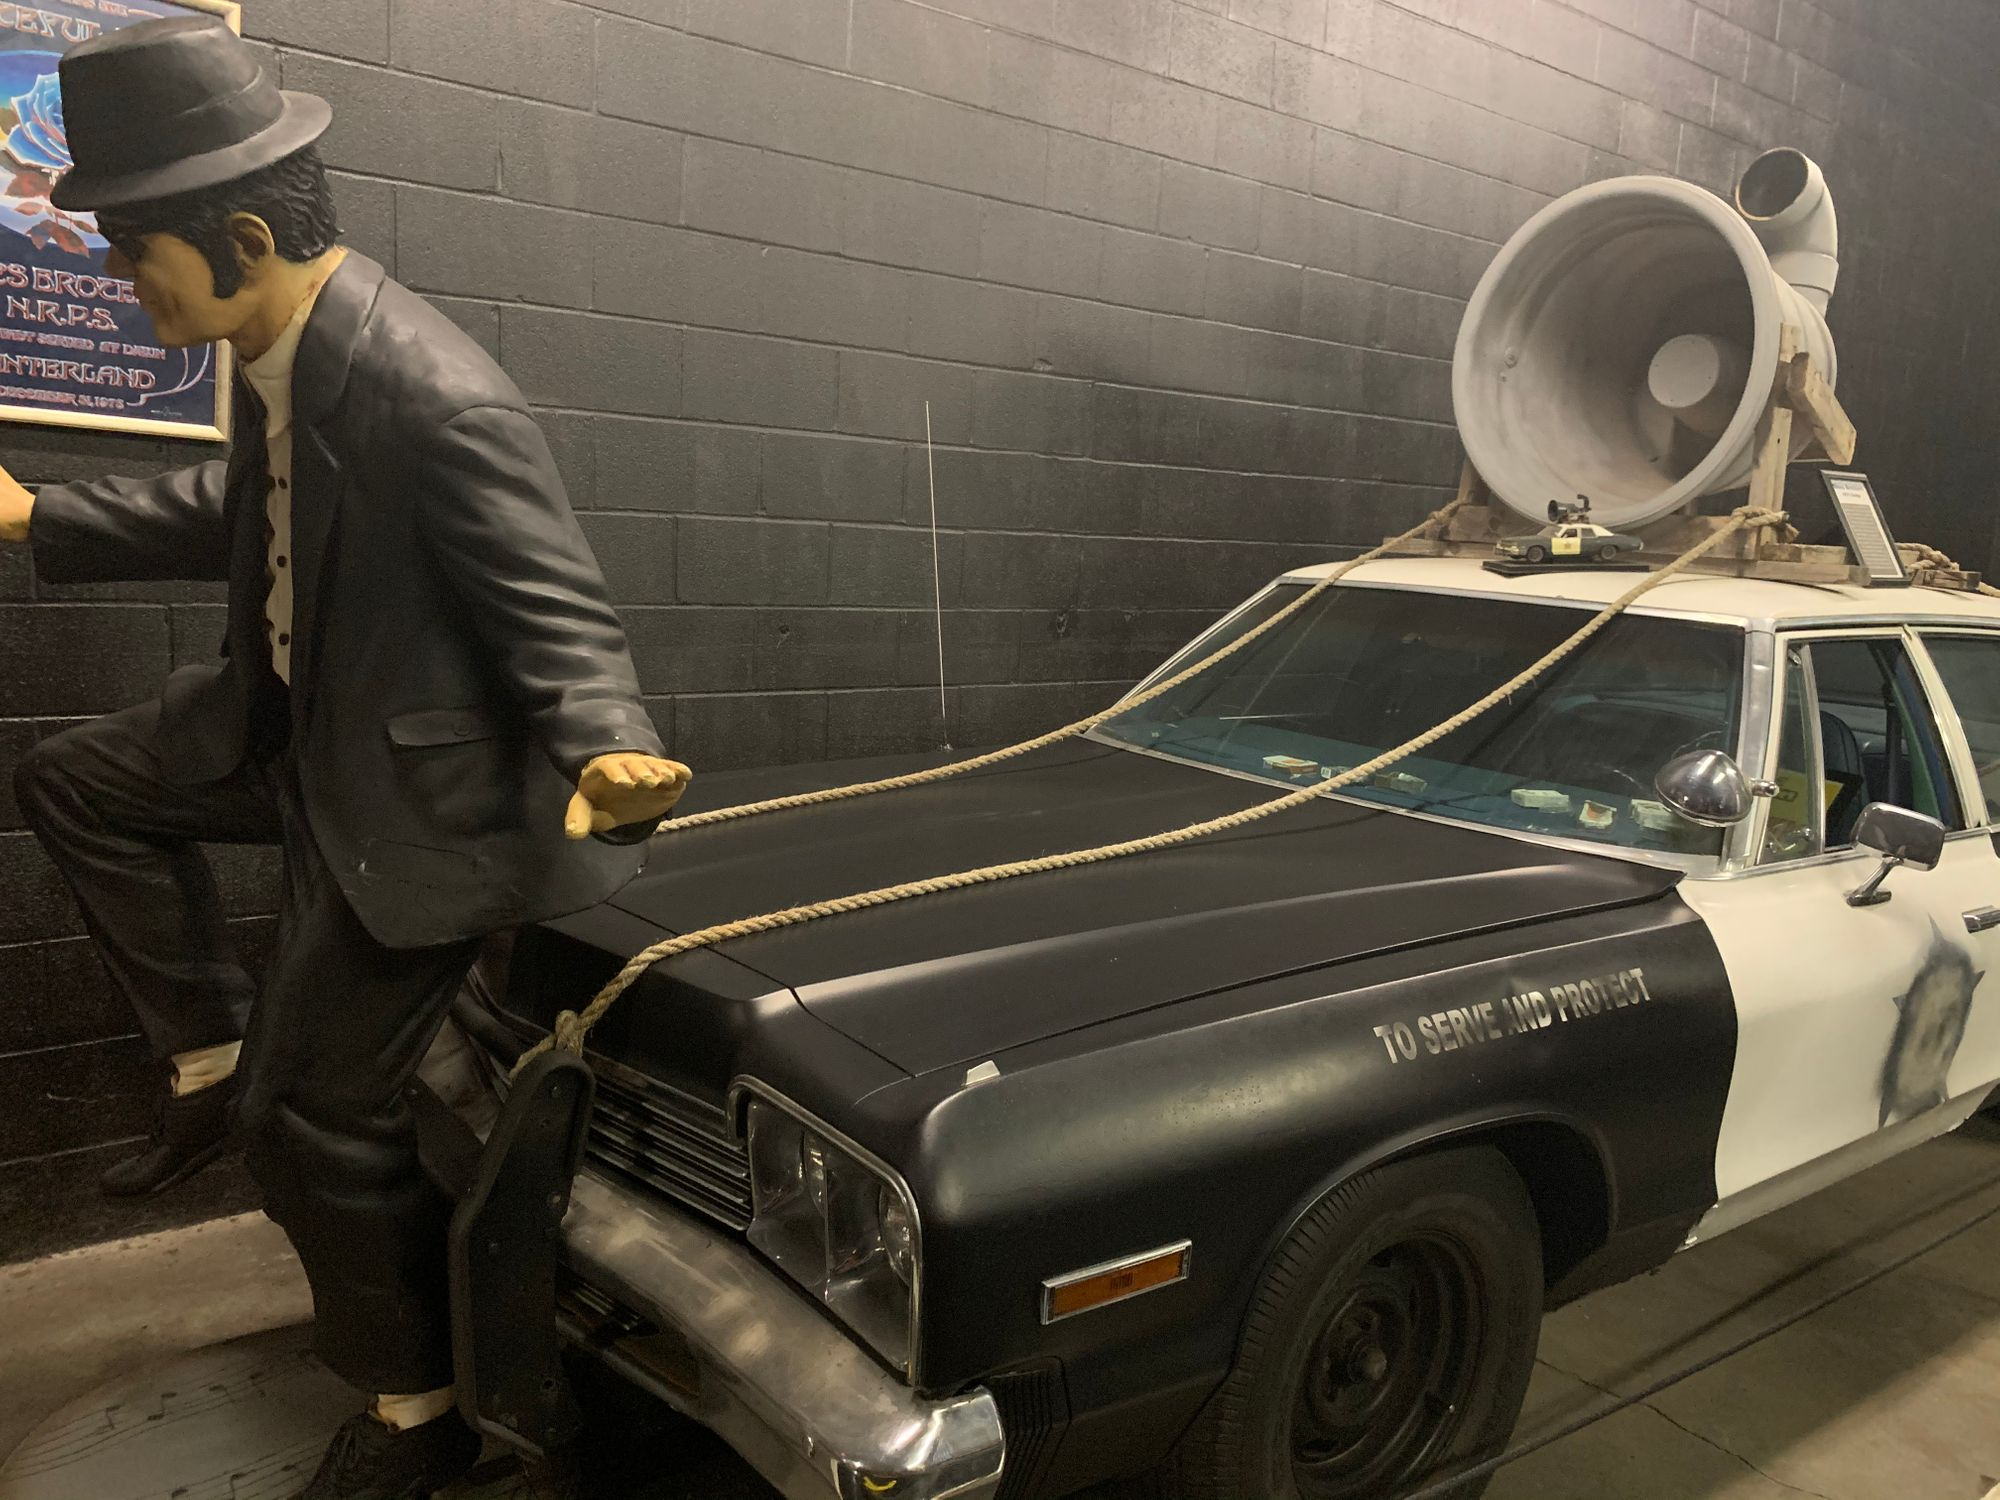 "<img src=""bluesmobile.jpg"" alt=""The ""Bluesmobile"" from The Blues Brothers"">"